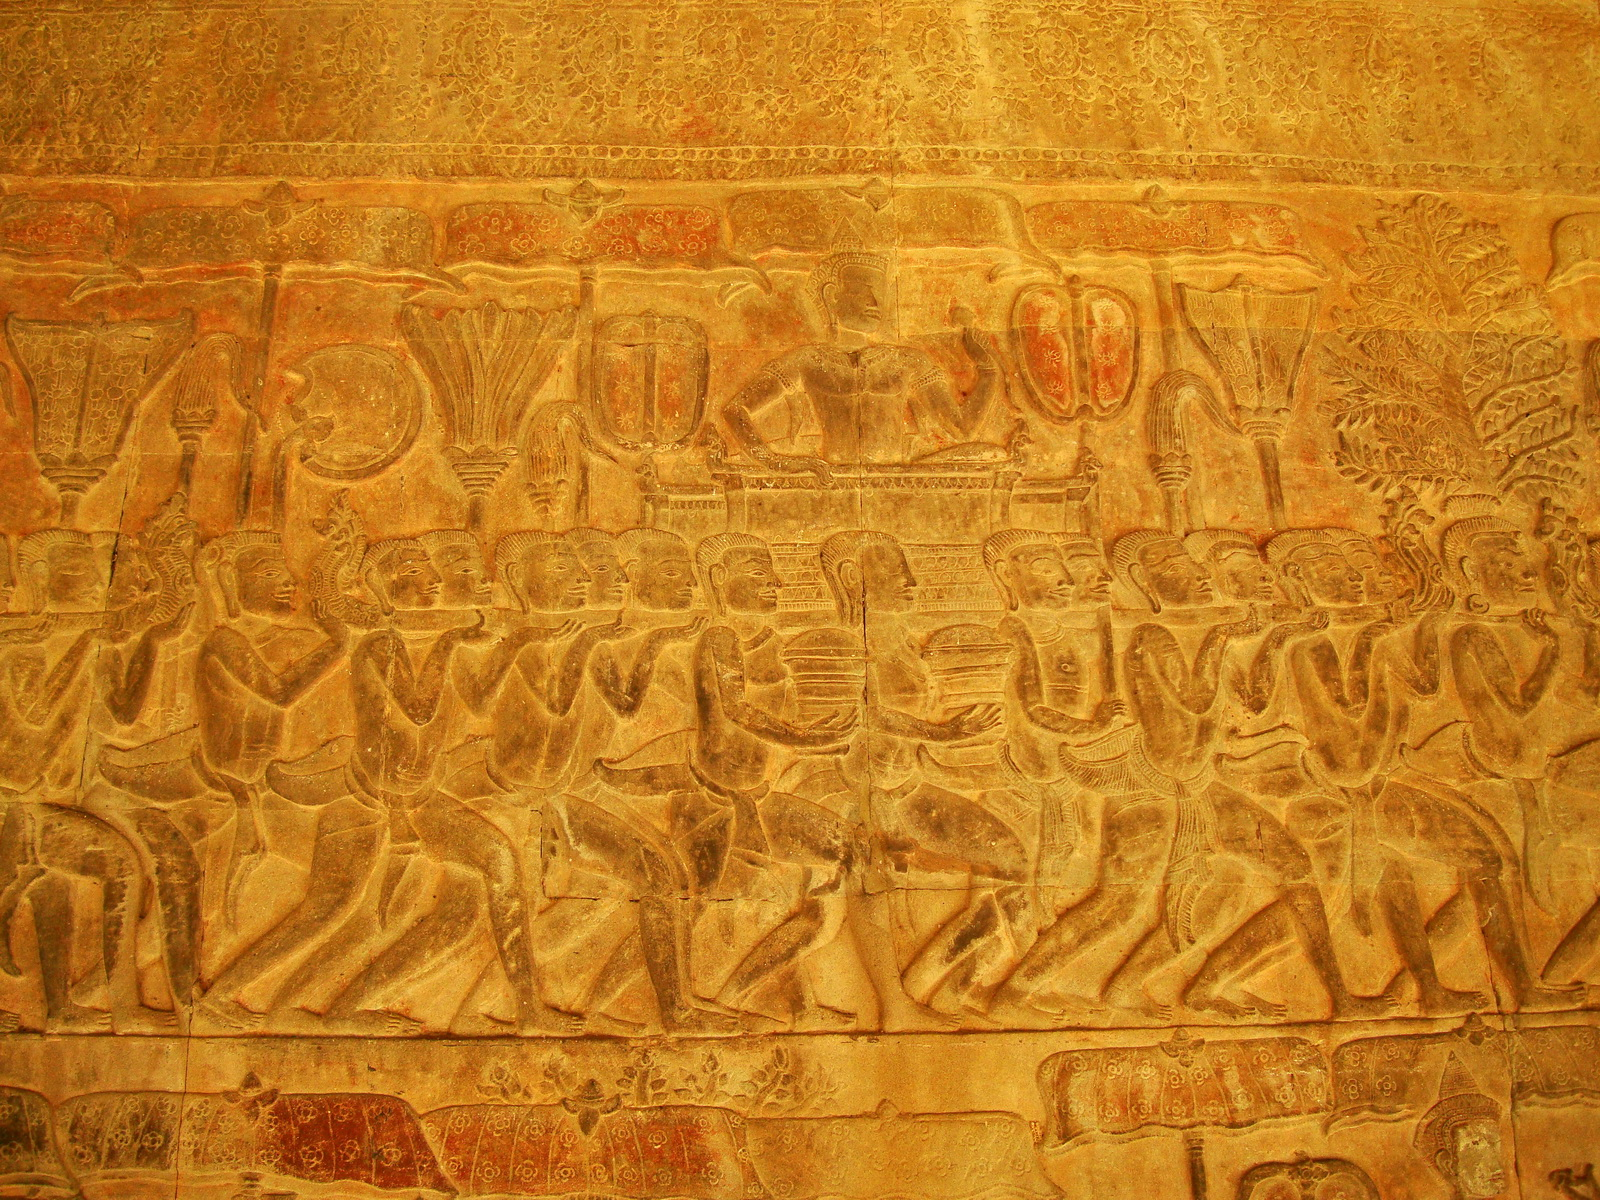 Angkor Wat Bas relief S Gallery E Wing Heavens and Hells 47